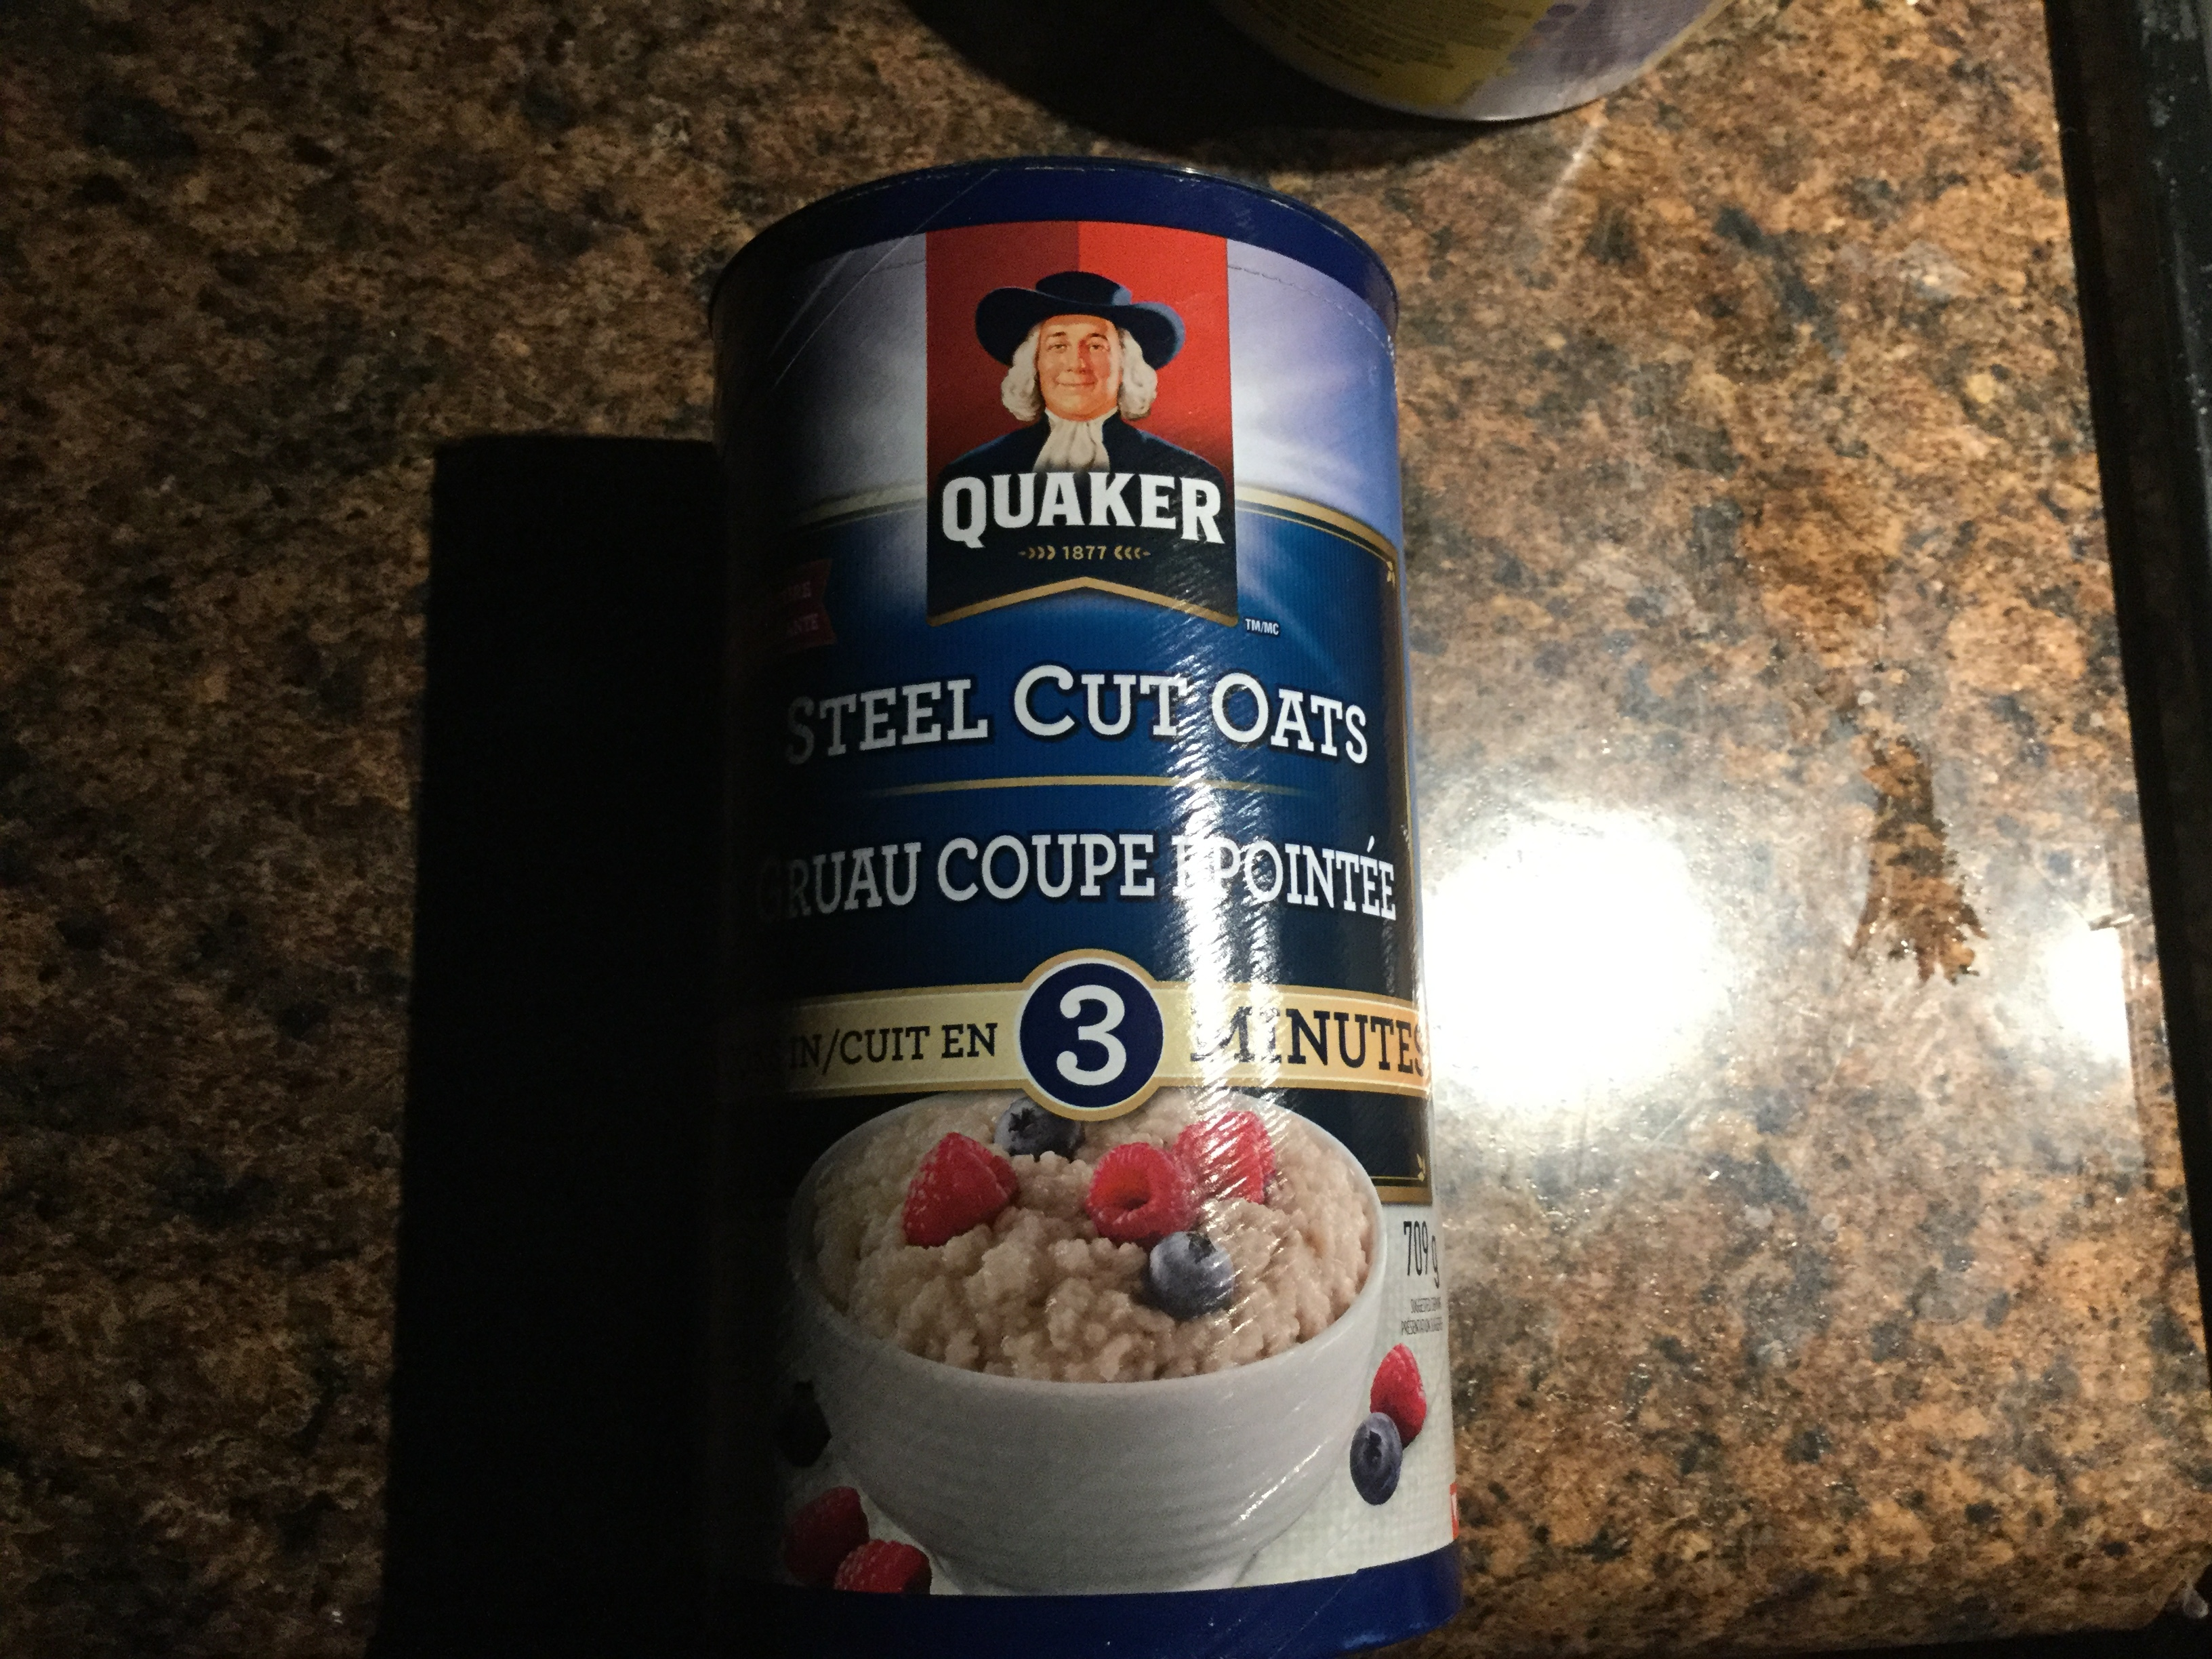 Quaker Steel Cut Oats reviews in Cereal - ChickAdvisor